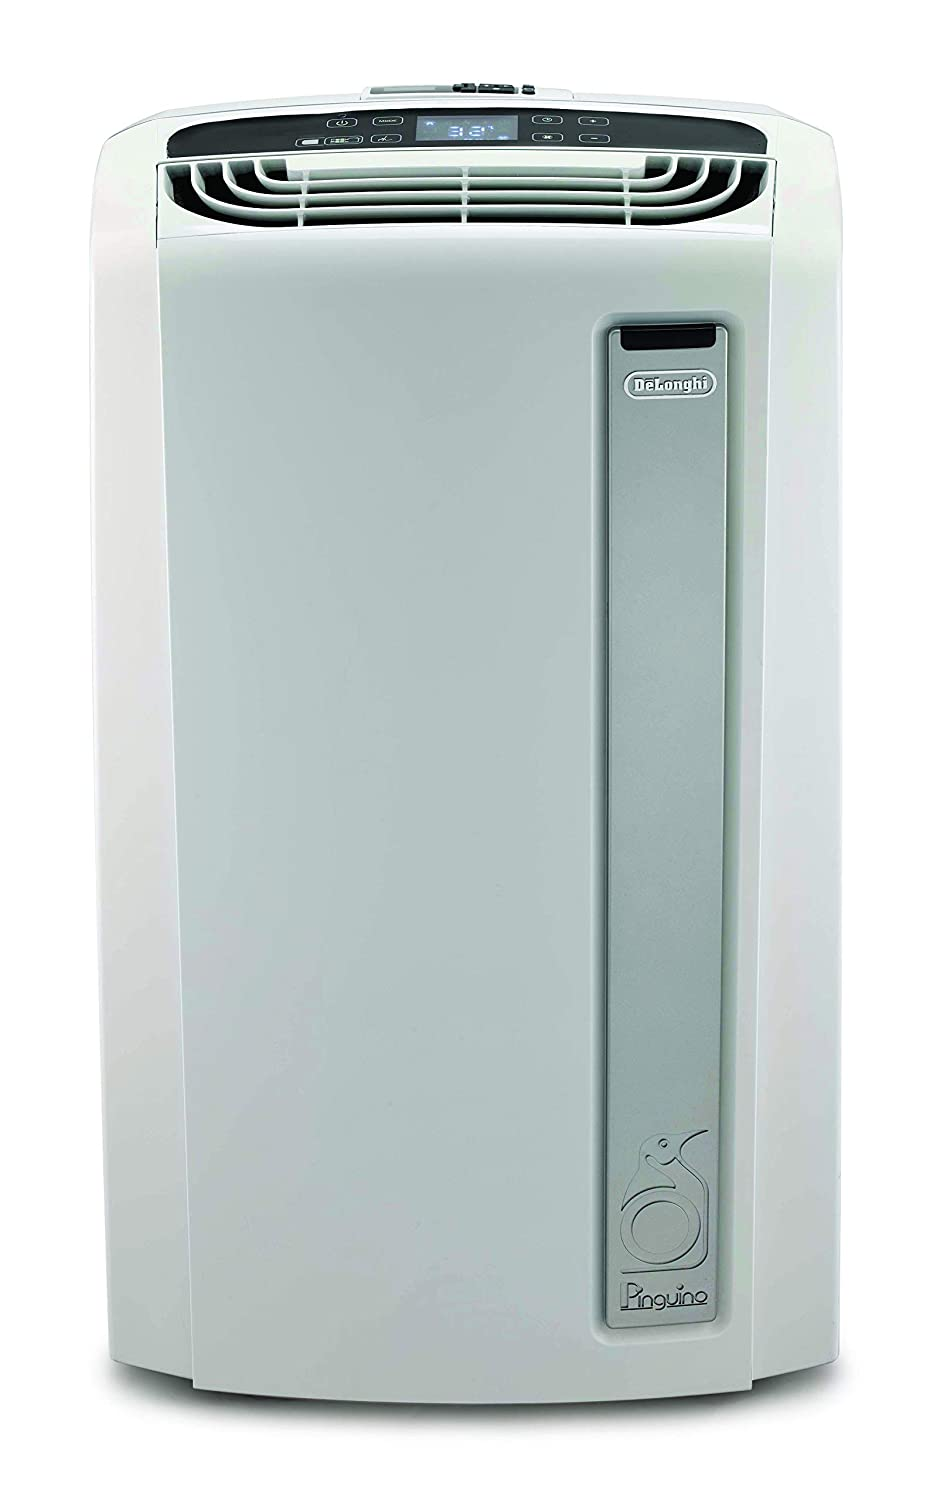 DeLonghi Pinguino Portable Air Conditioner, White